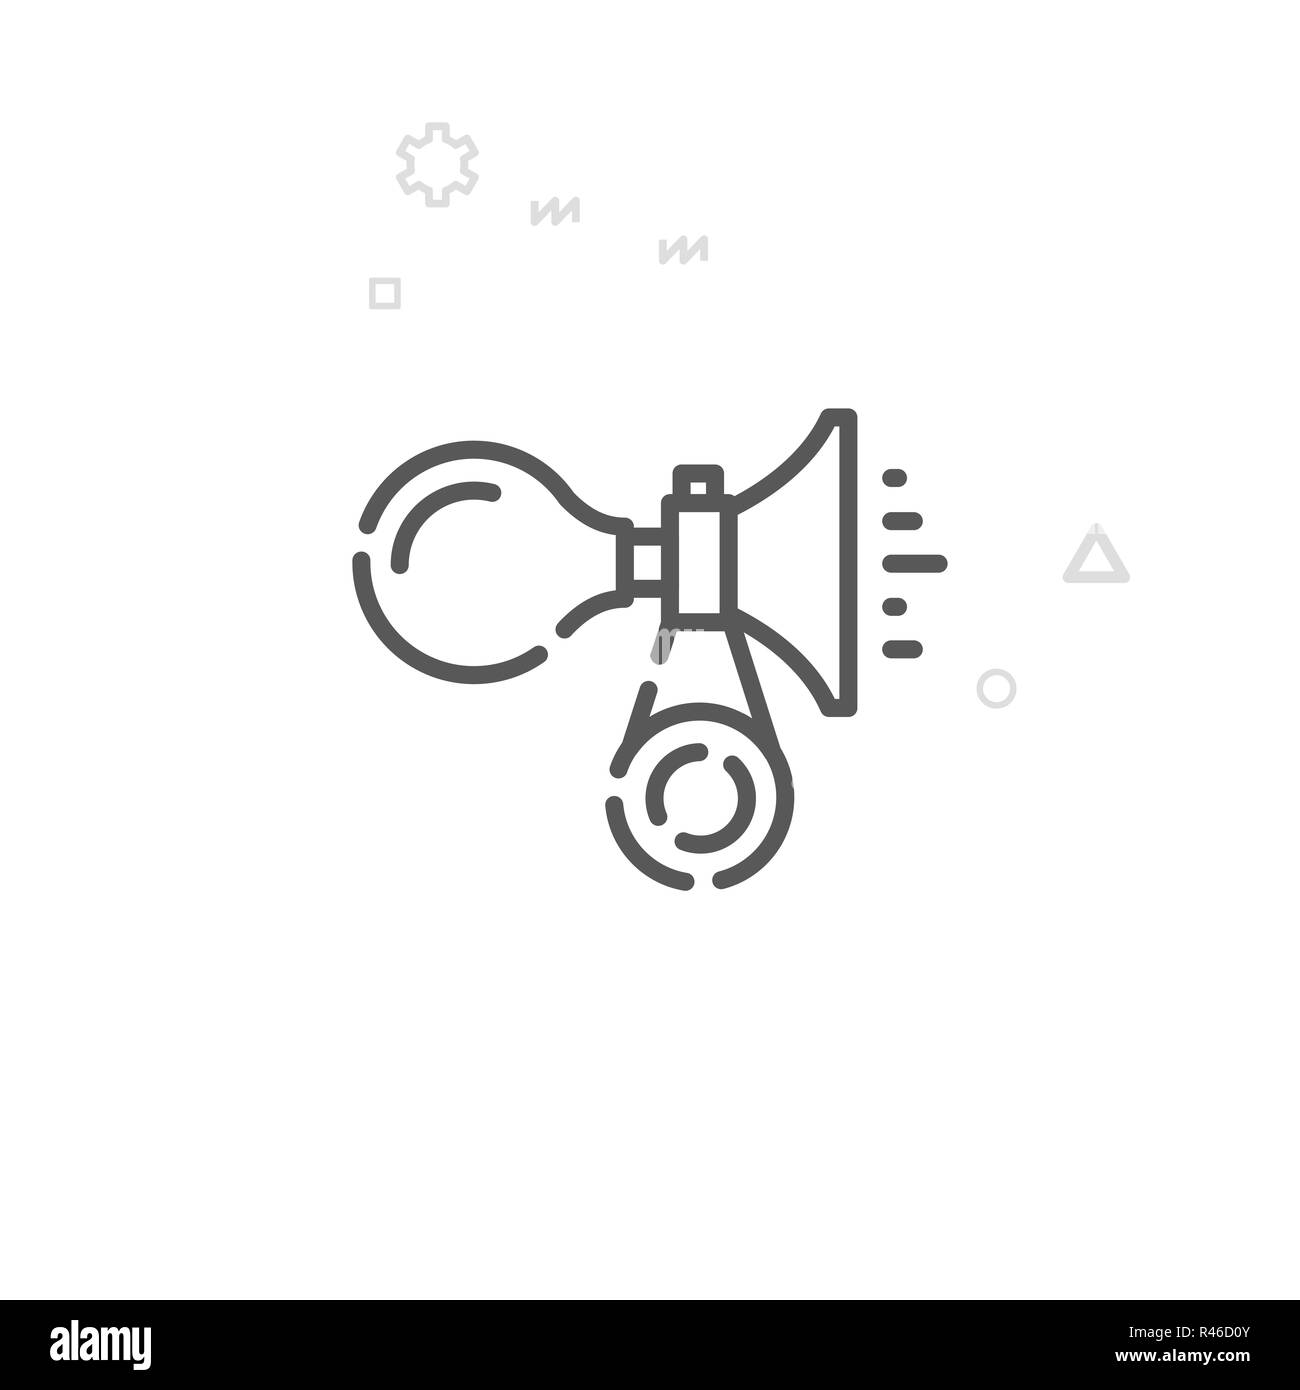 Bike or Bicycle Horn Line Icon. Bicycle Accessory Symbol, Pictogram, Sign. Light Abstract Geometric Background. Editable Stroke. Adjust Line Weight. D - Stock Image